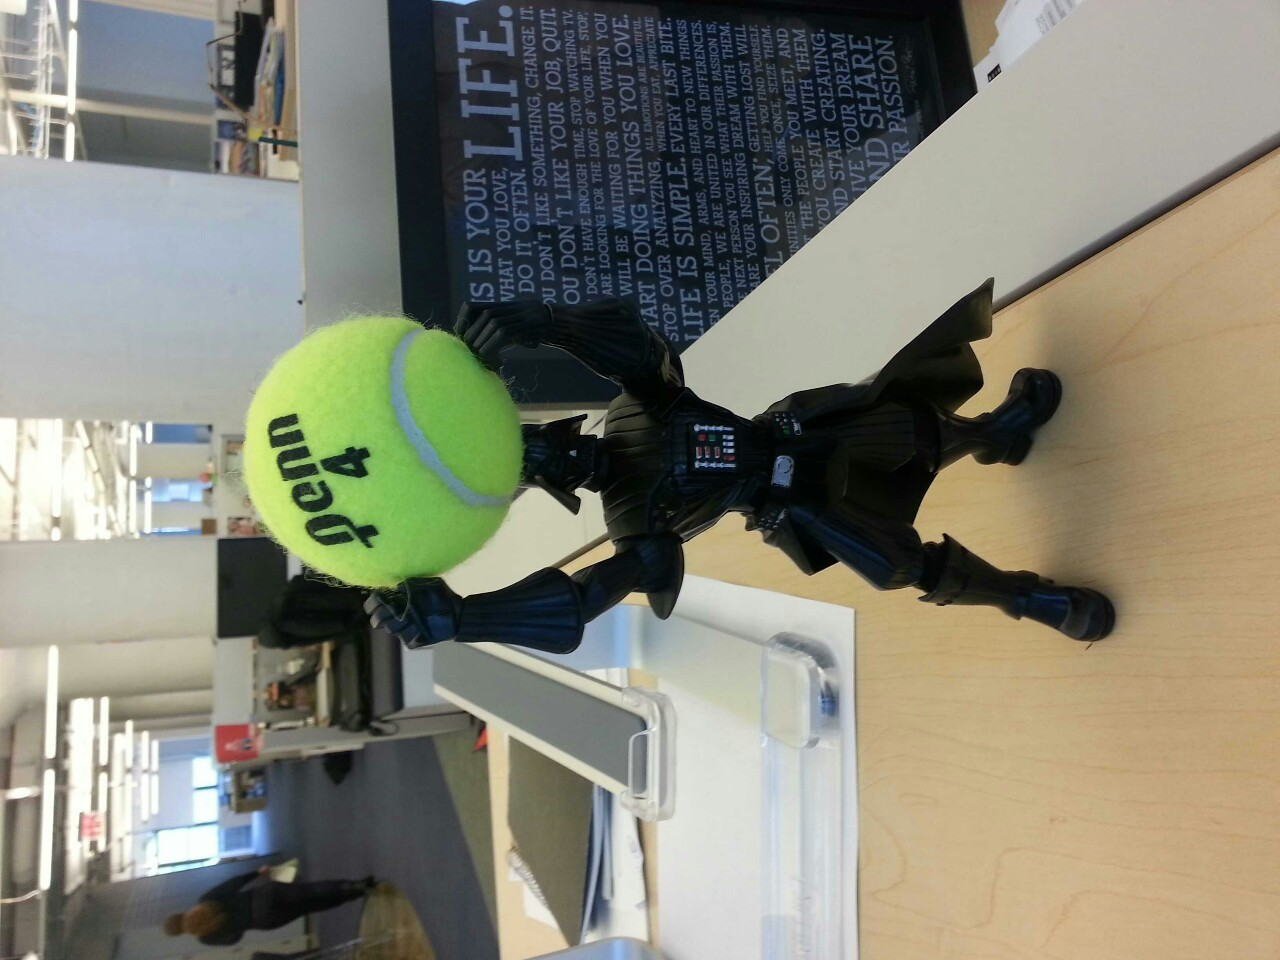 Darth took the tennis ball from my desk!